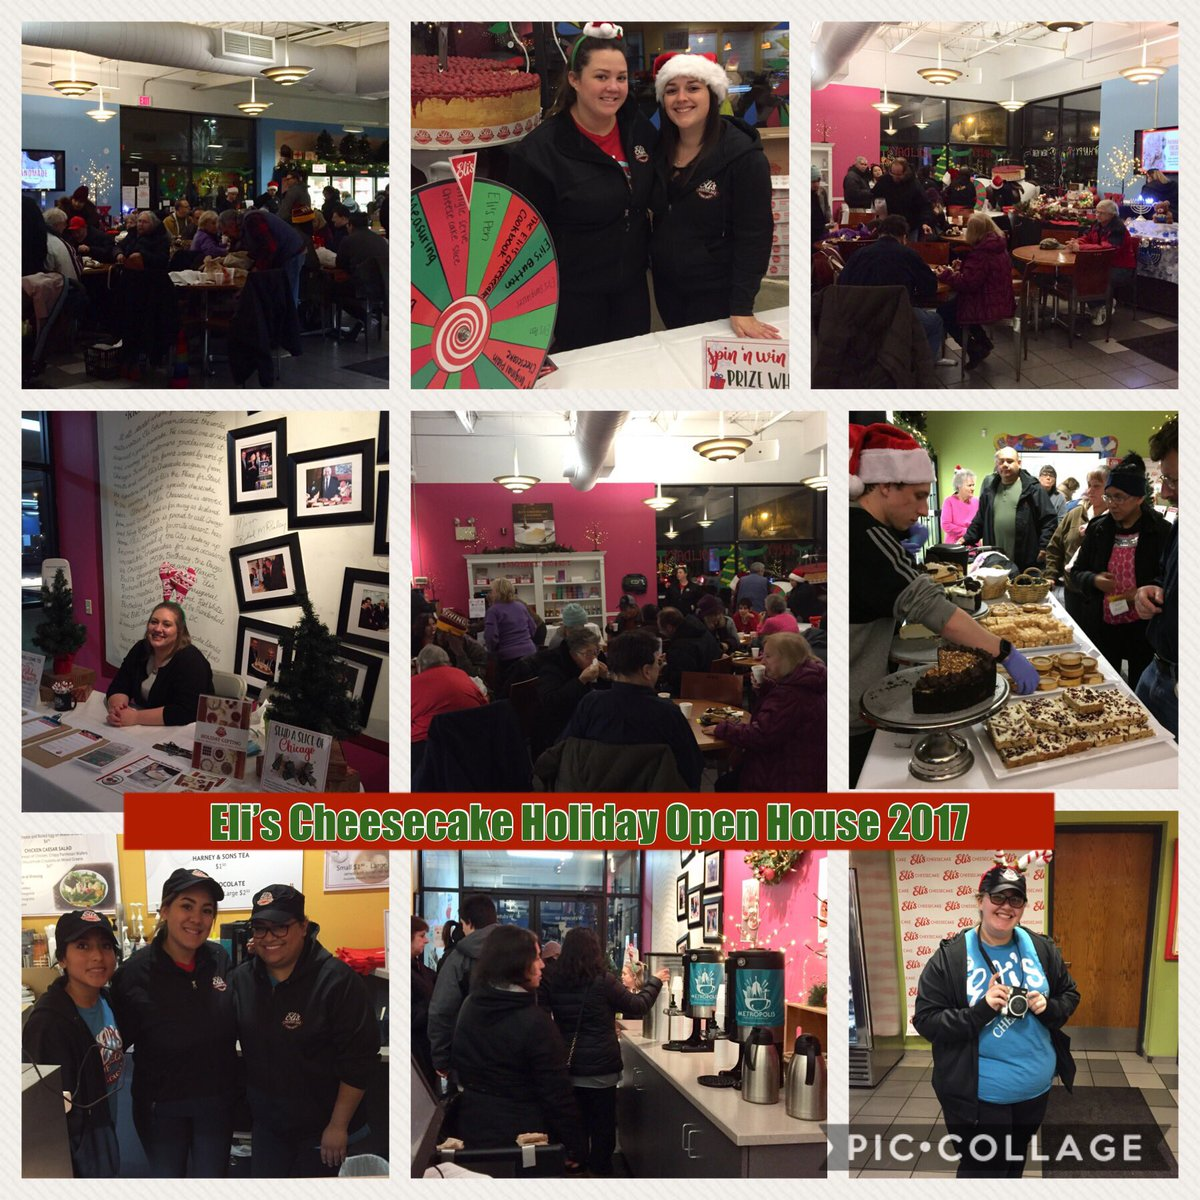 Shopping, dining and fun @ElisCheesecake Holiday Open House 2017 #Chicago